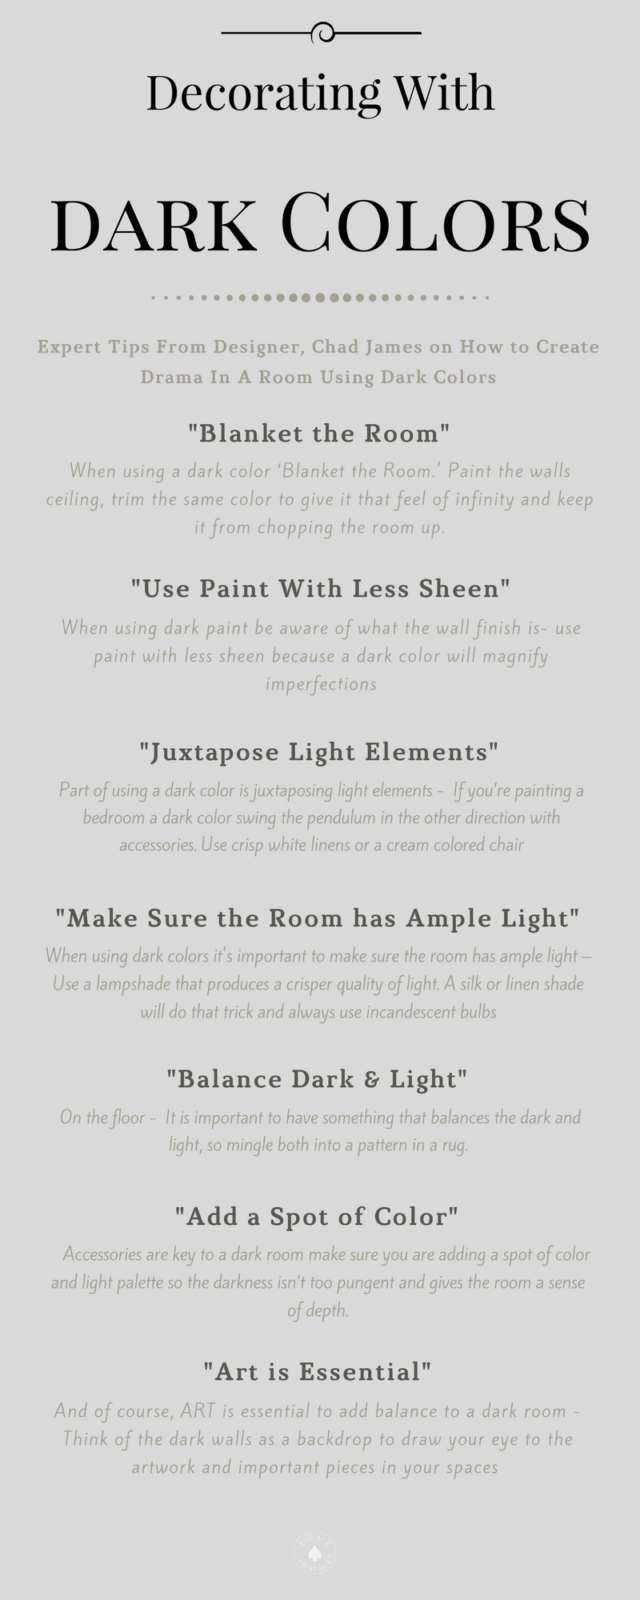 7 Expert Tips For Decorating With Dark Colors